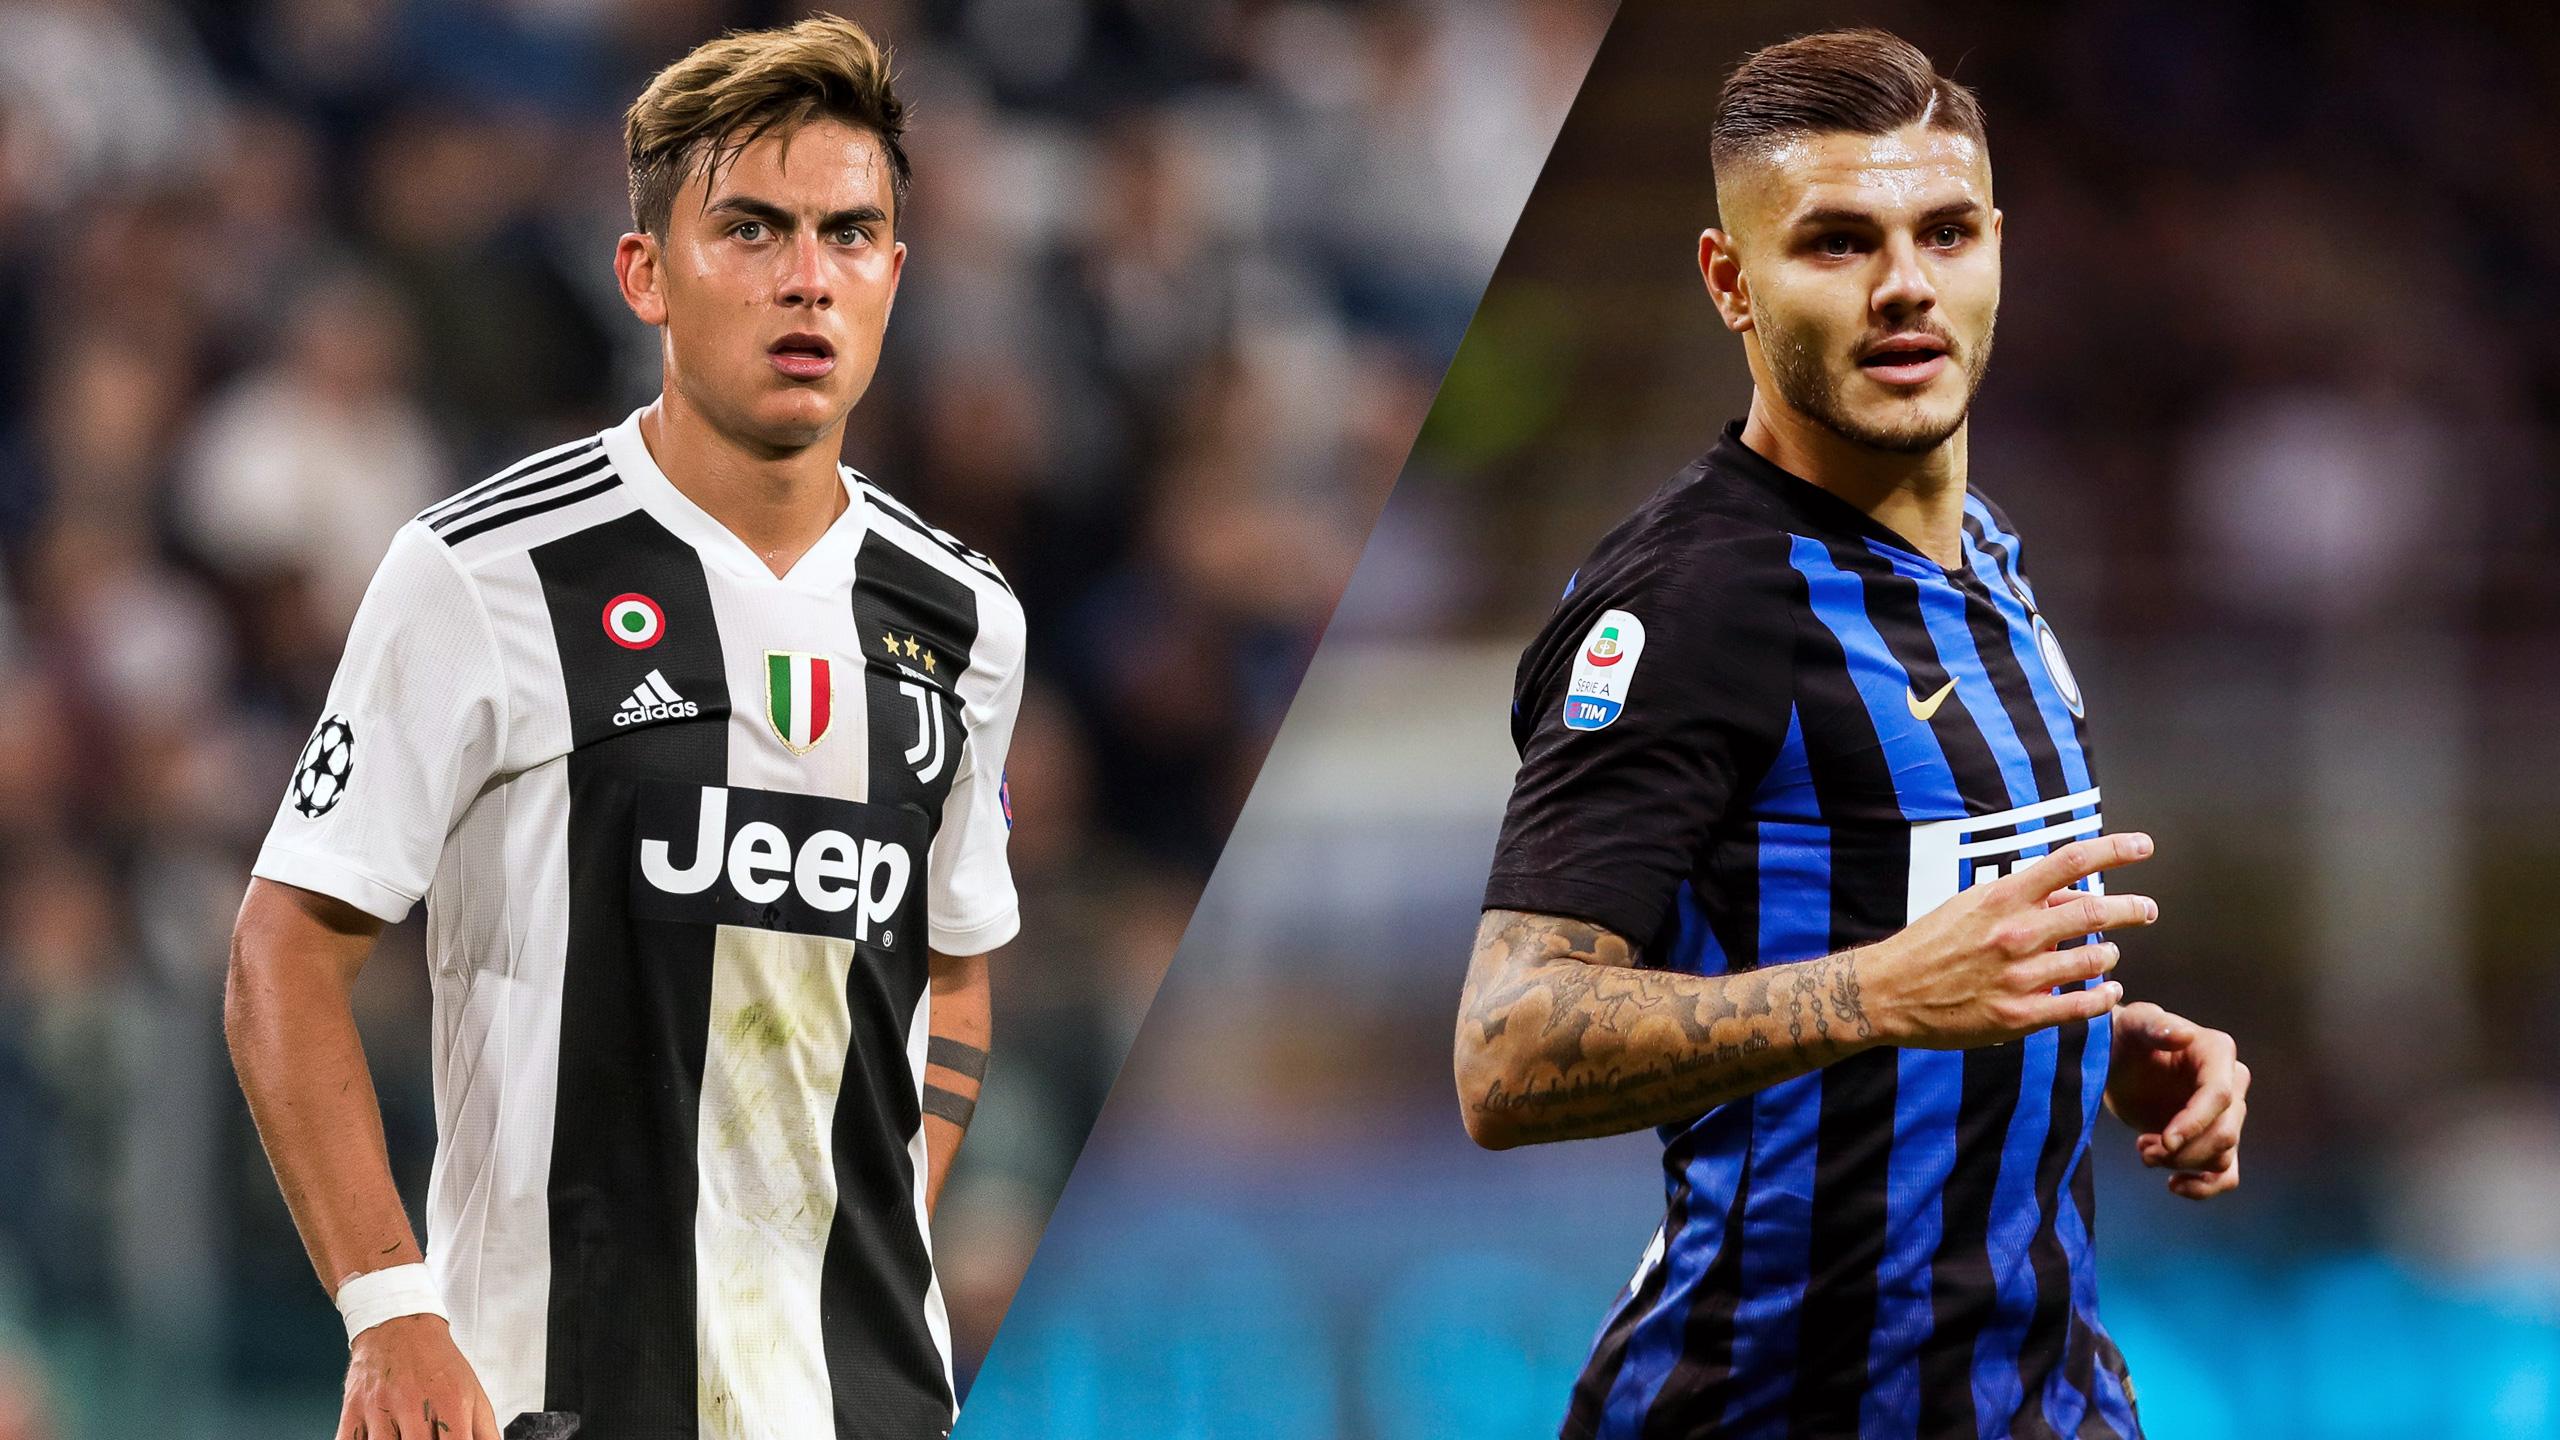 In Spanish - Juventus vs. Inter Milan (Serie A)